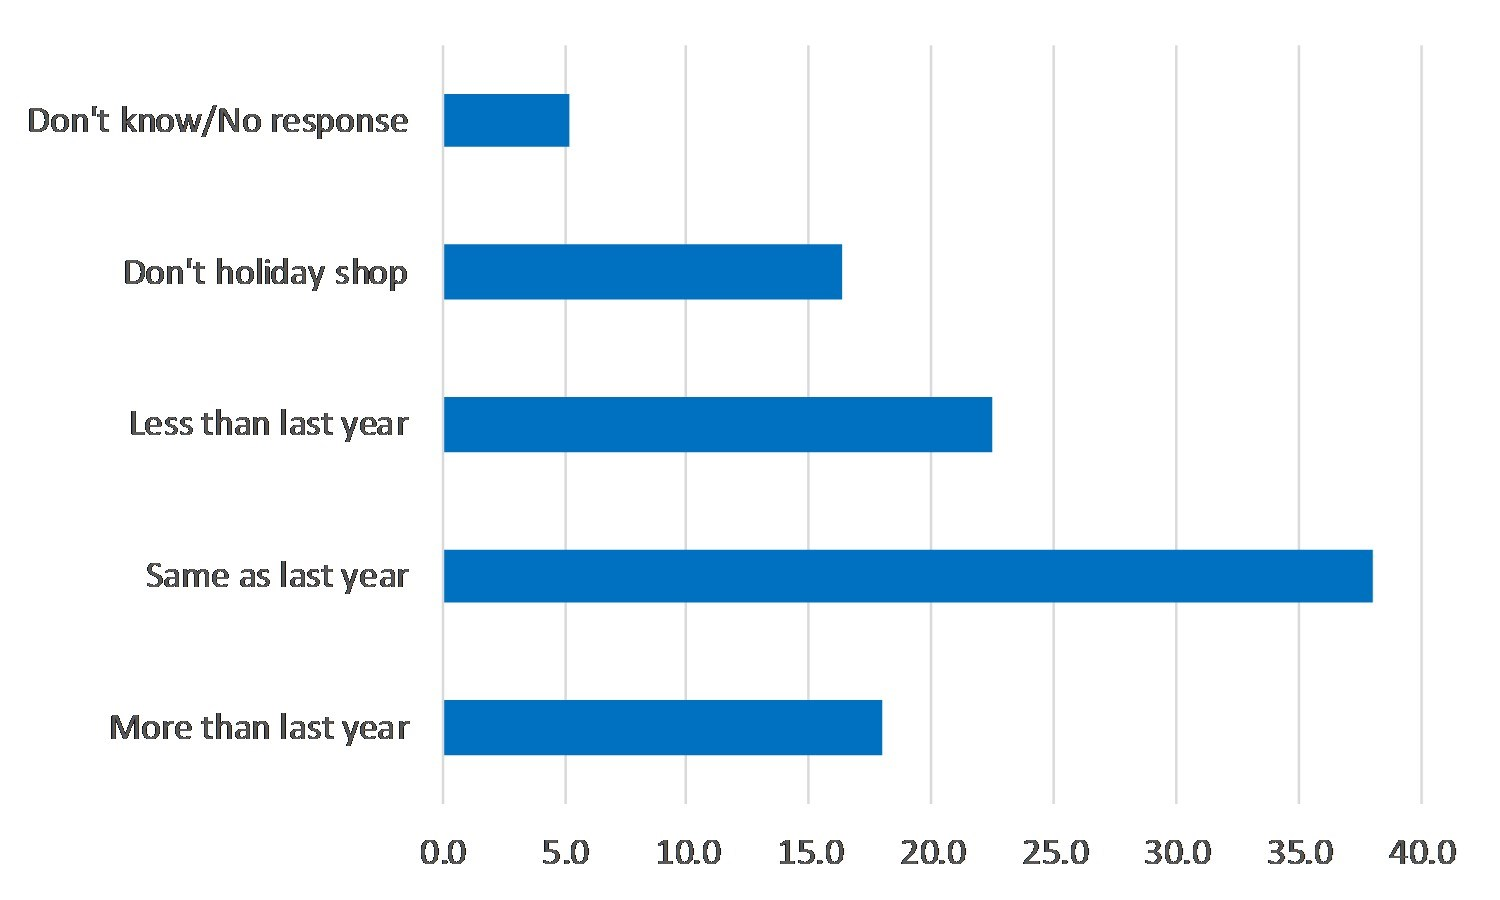 A bar chart showing categories of how much respondents will spend compared to last year.